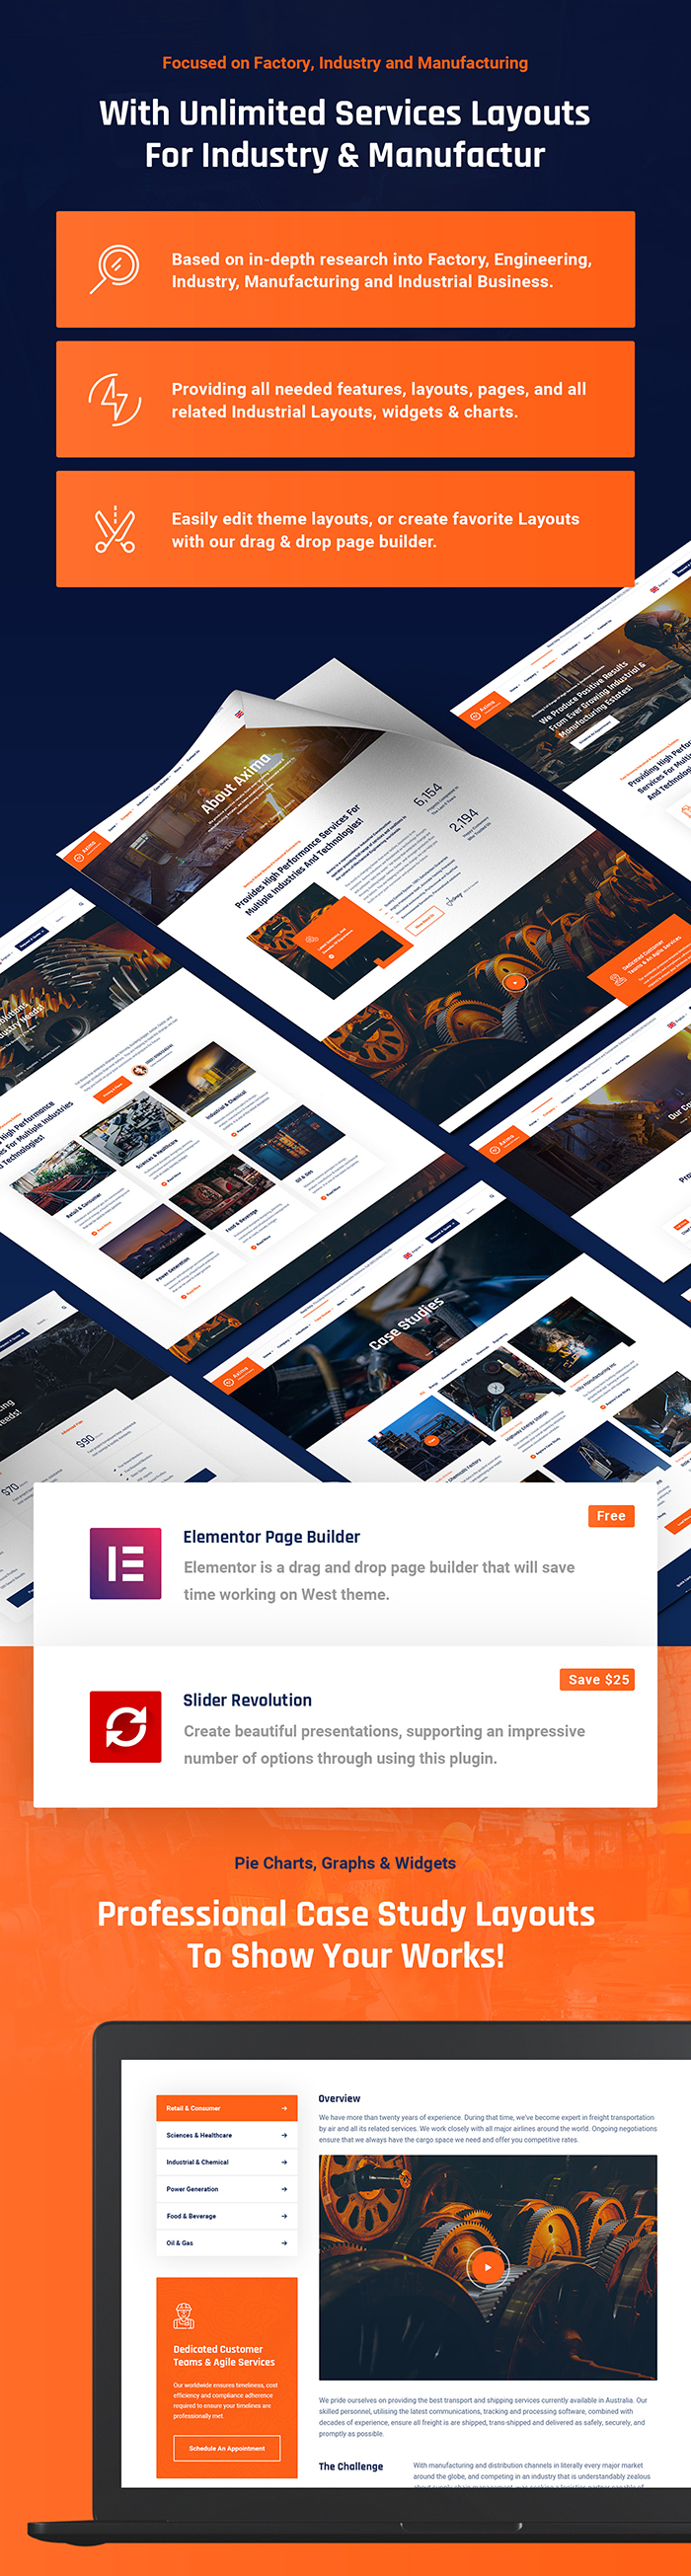 Axima - Factory and Industry WordPress Theme - 6